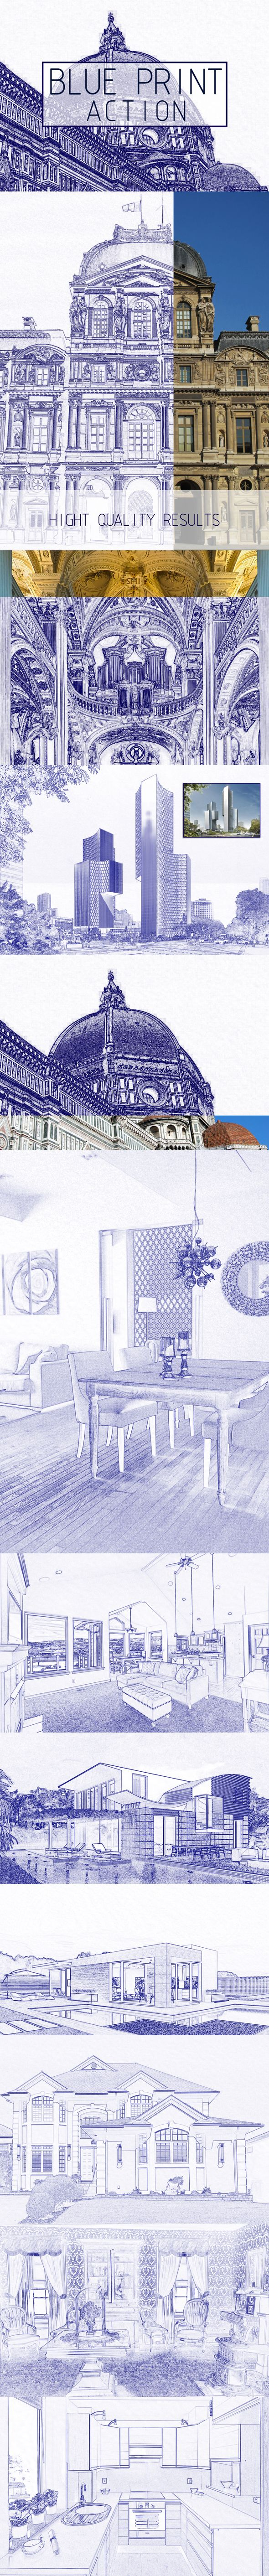 Architectural Sketch Photoshop Action - Photo Effects Actions